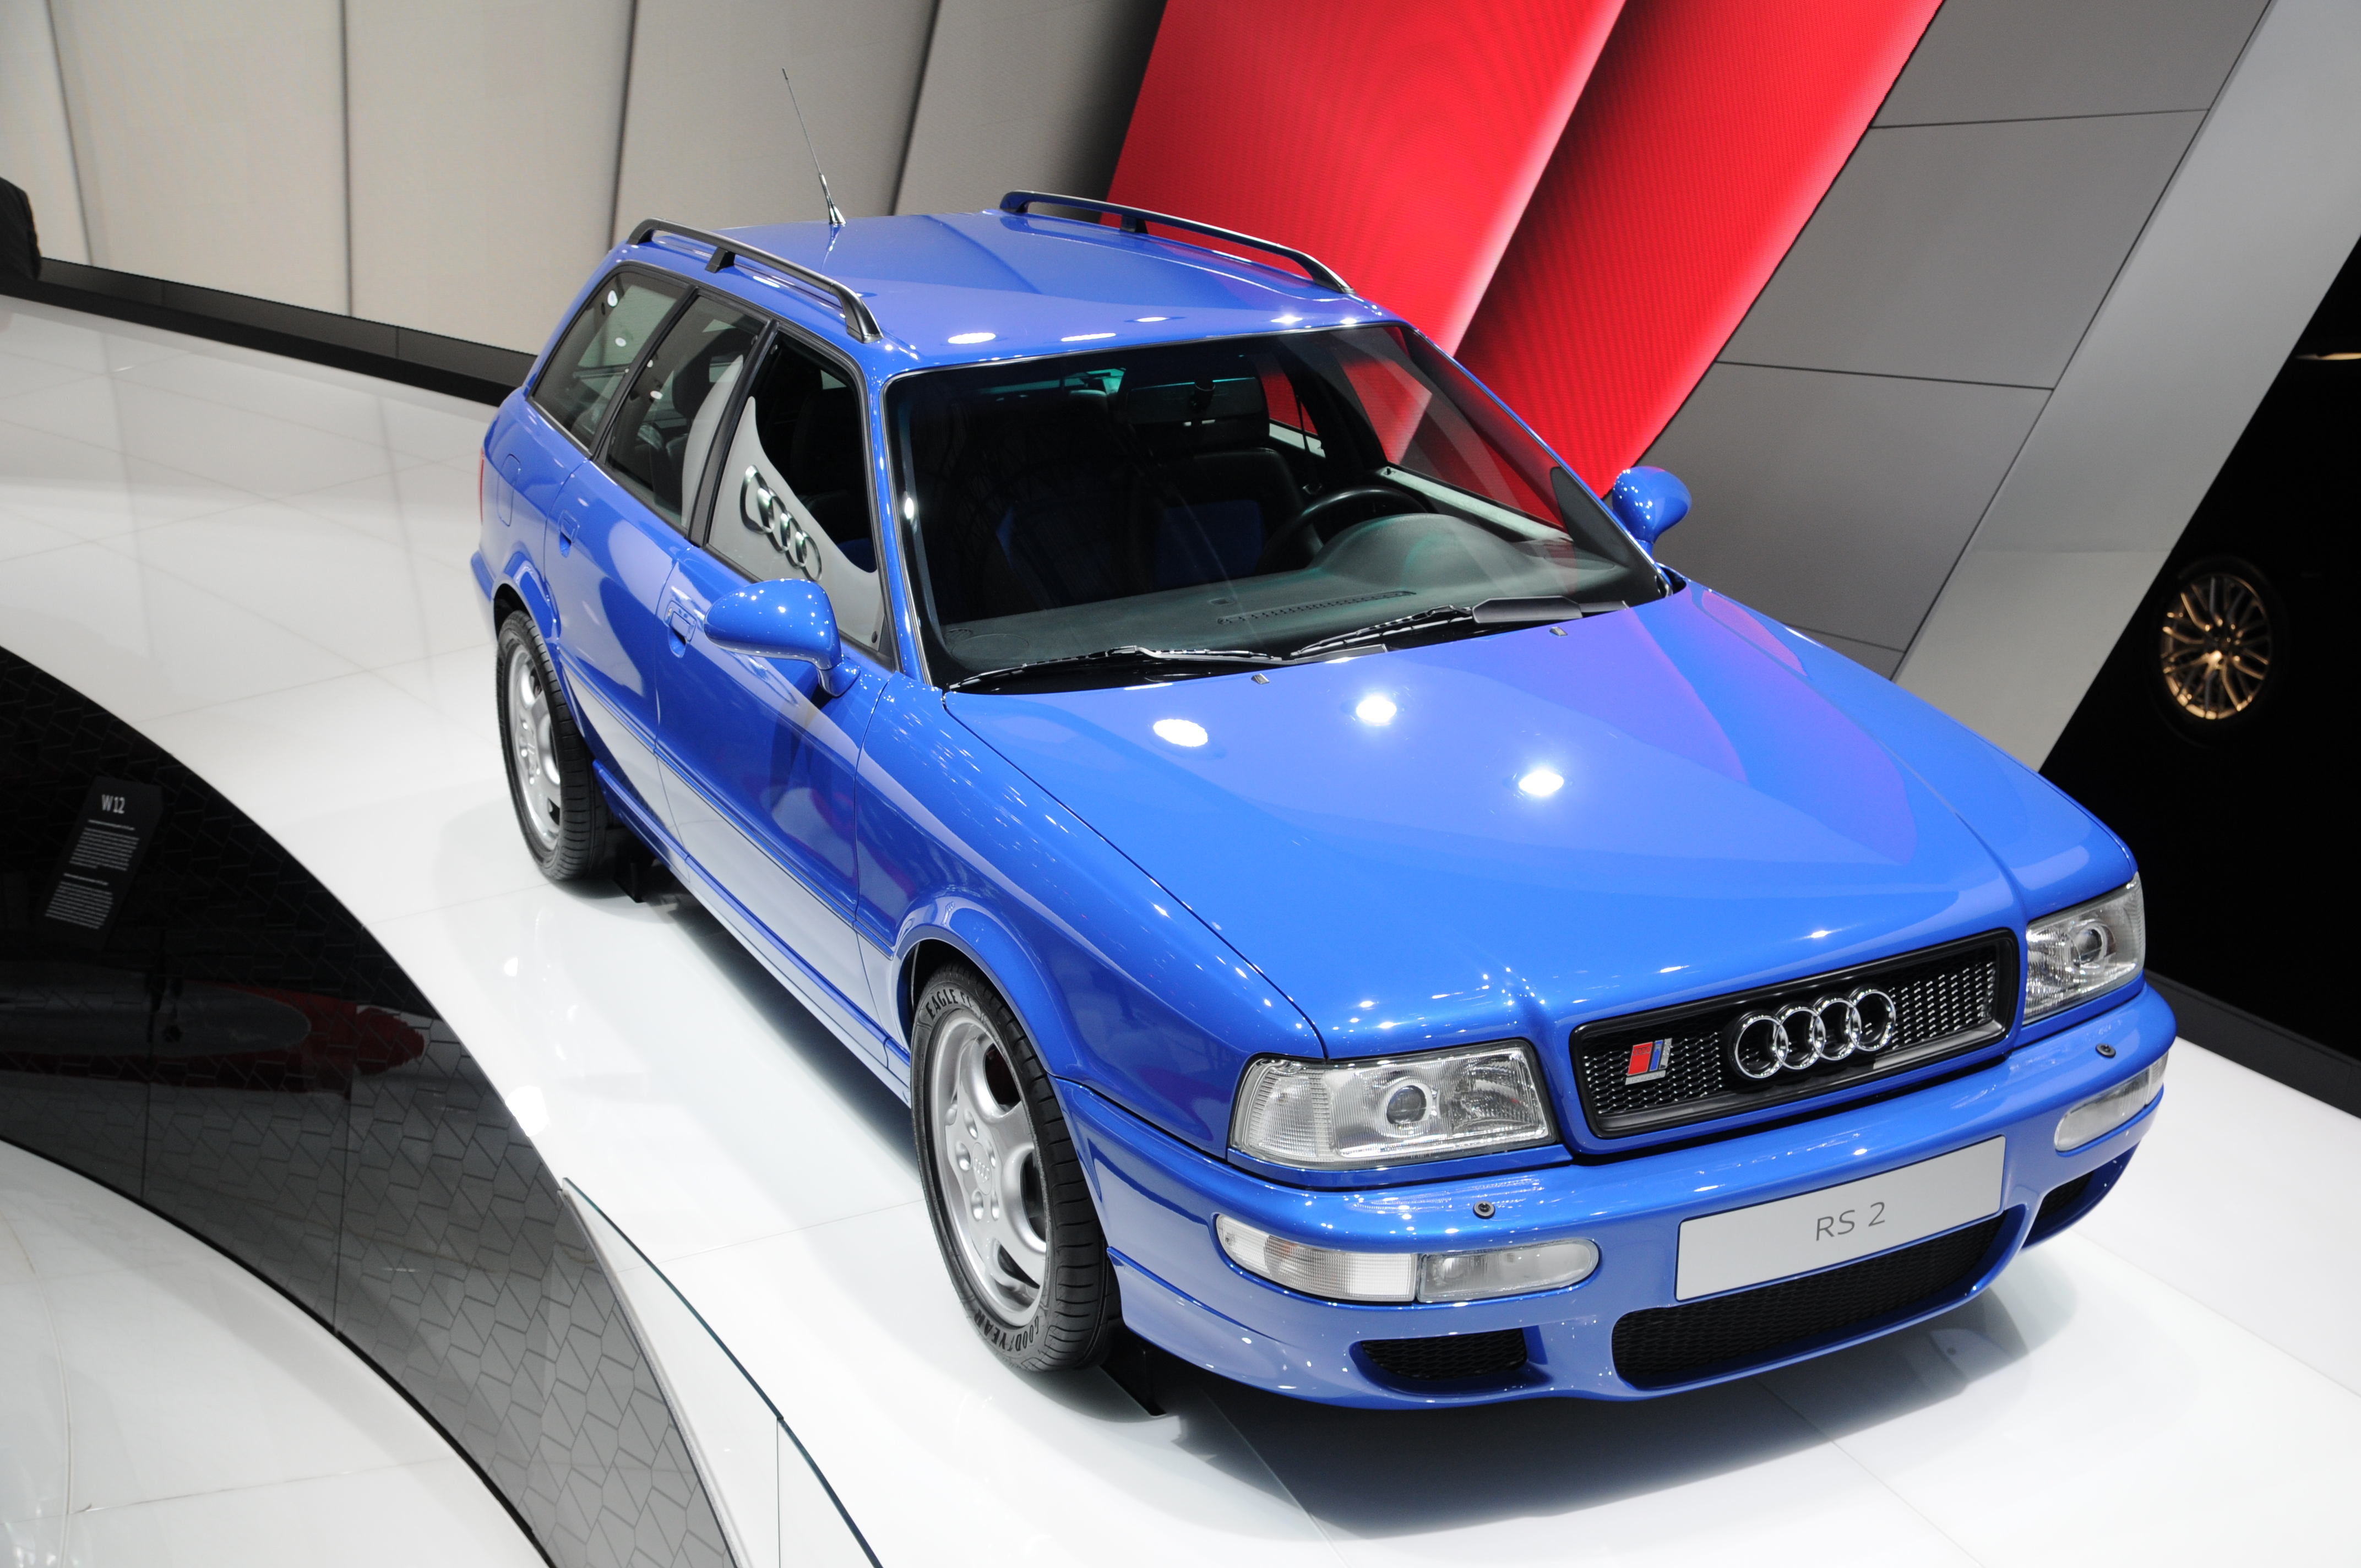 Image result for 1995 audi rs2 avant